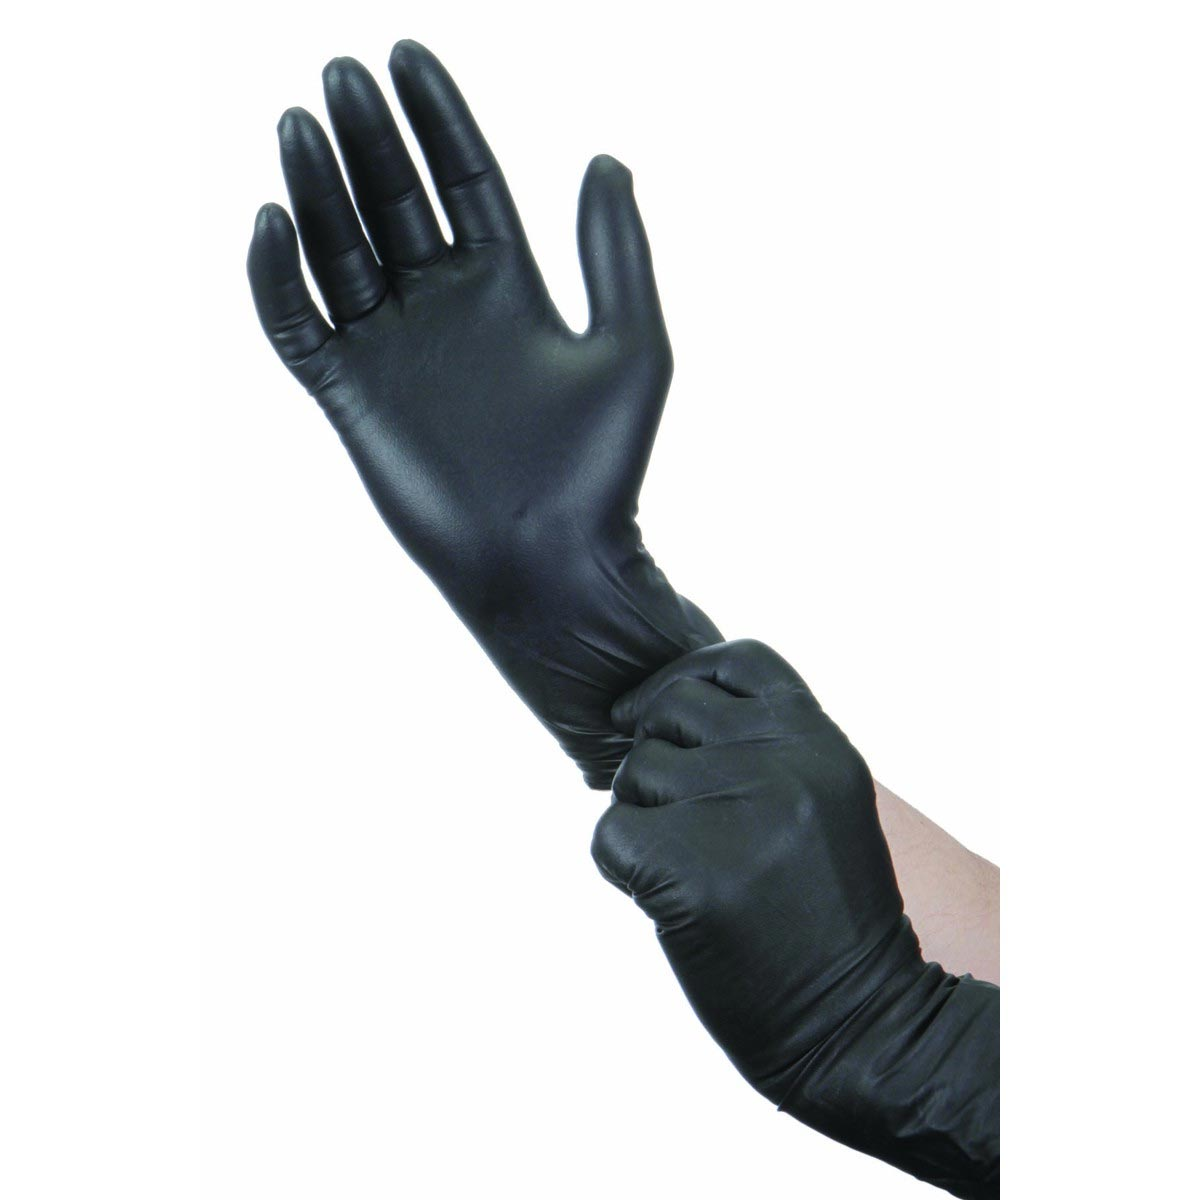 Hardy Nitrile 9 mil thick Box of 50 MED Gloves